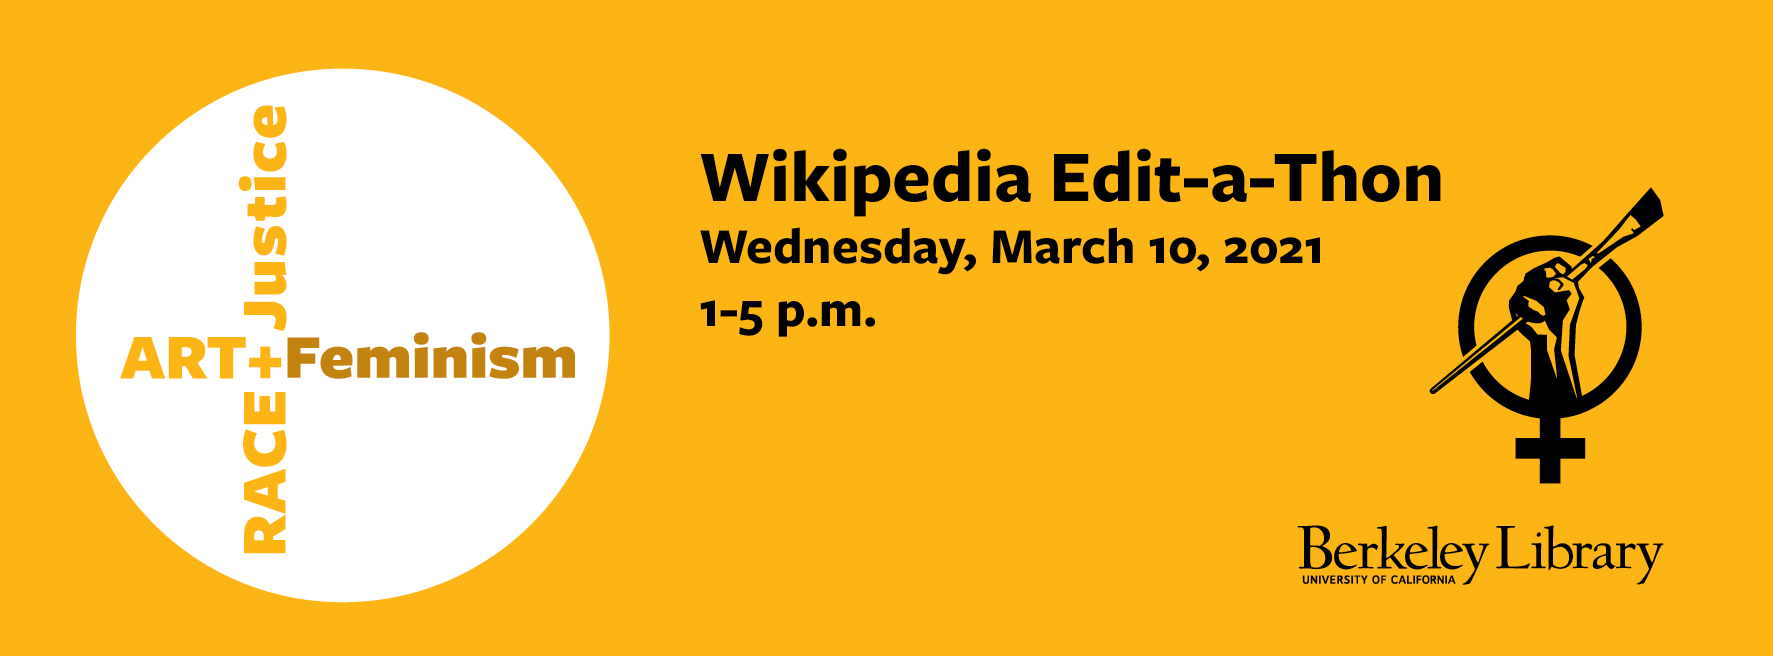 Edit-a-thon logo and date-time